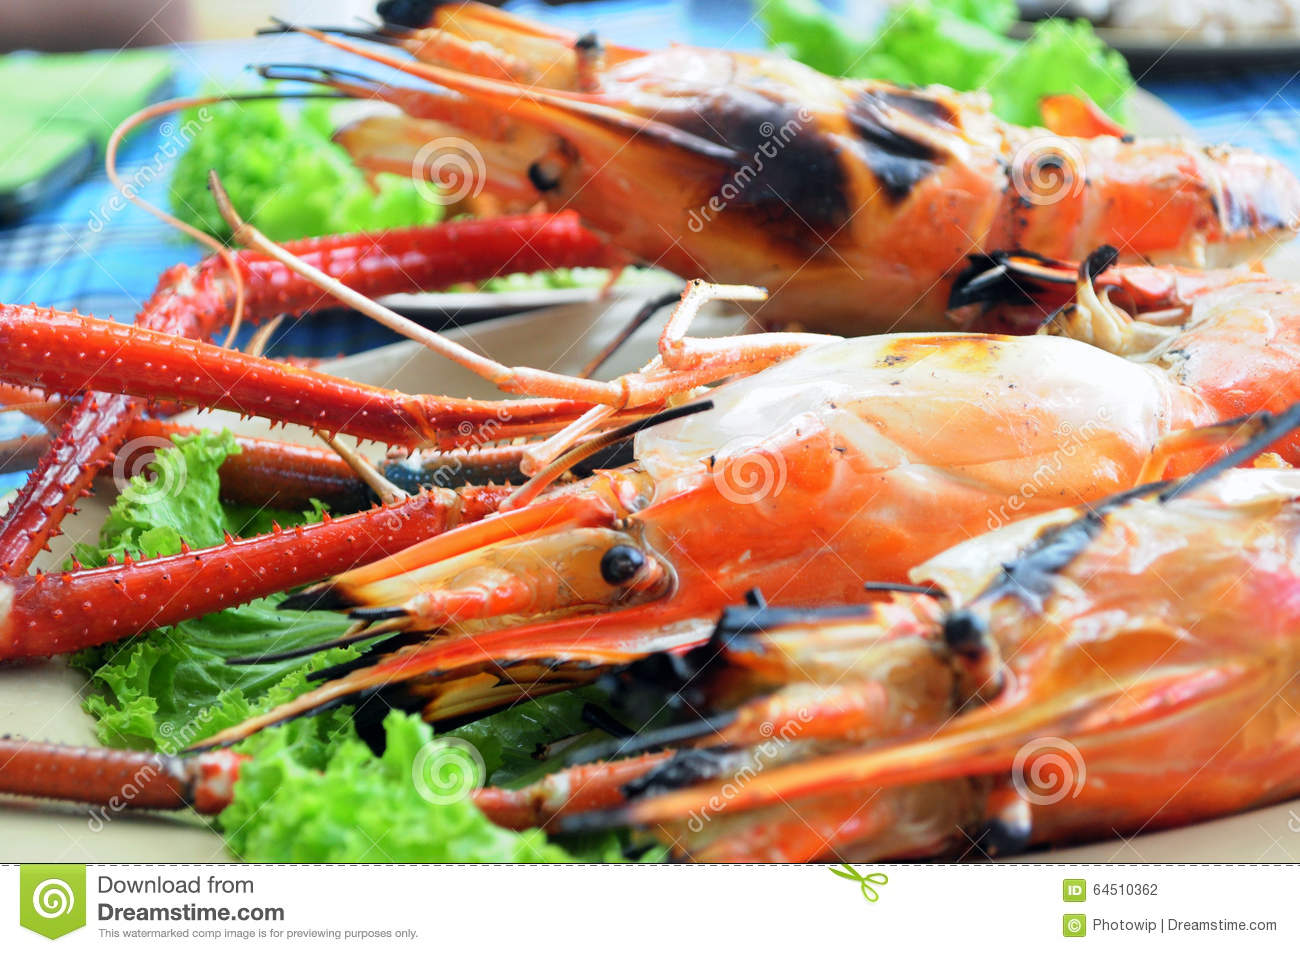 Grilled Lobster Stock Photo - Image: 64510362